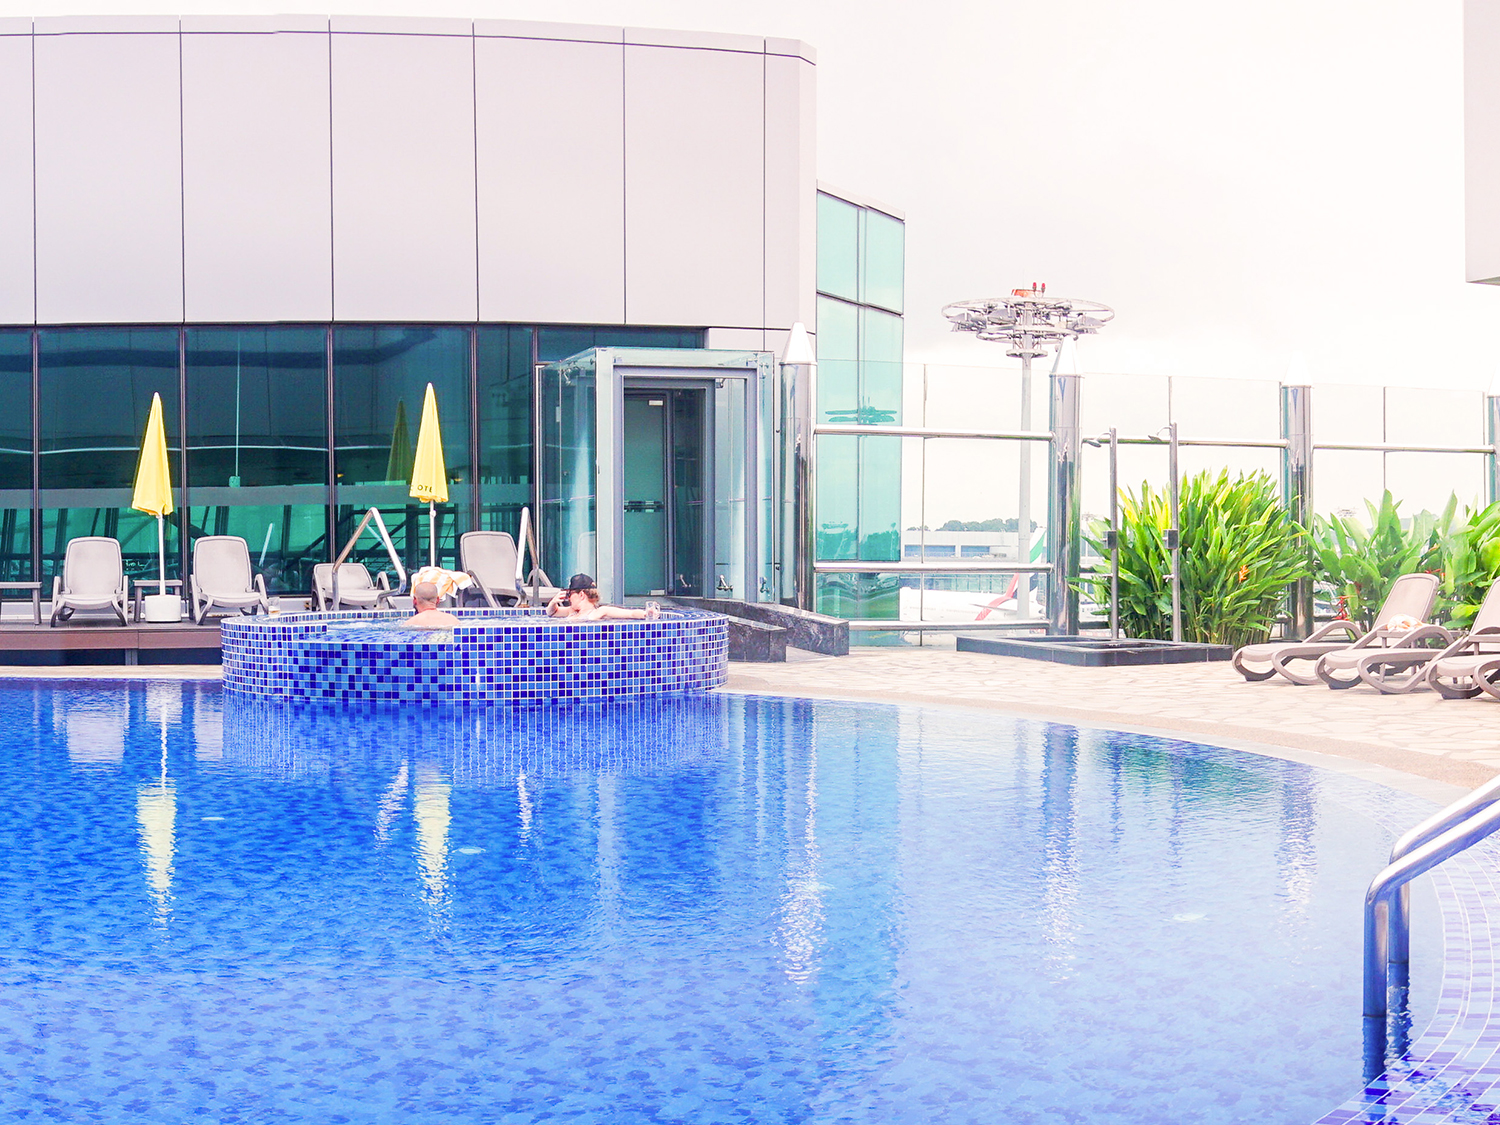 What: Swimming Pool with Jacuzzi<br>Where: Aerotel Airport Transit Hotel, Terminal 1 Departure Transit Hall, Level 3